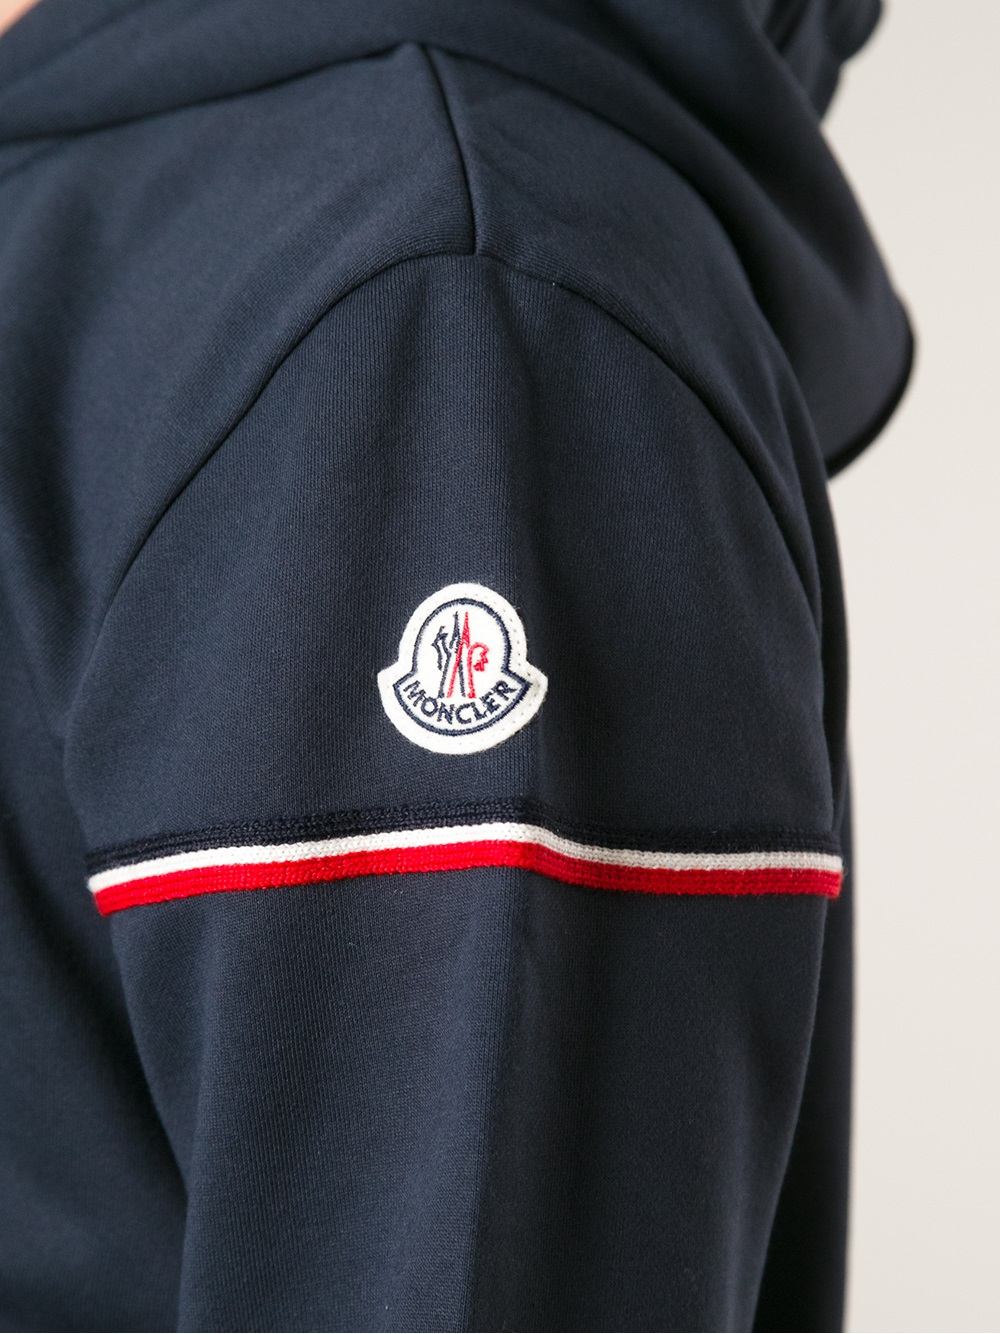 9bf2e3964 Lyst - Moncler Hooded Track Top in Blue for Men